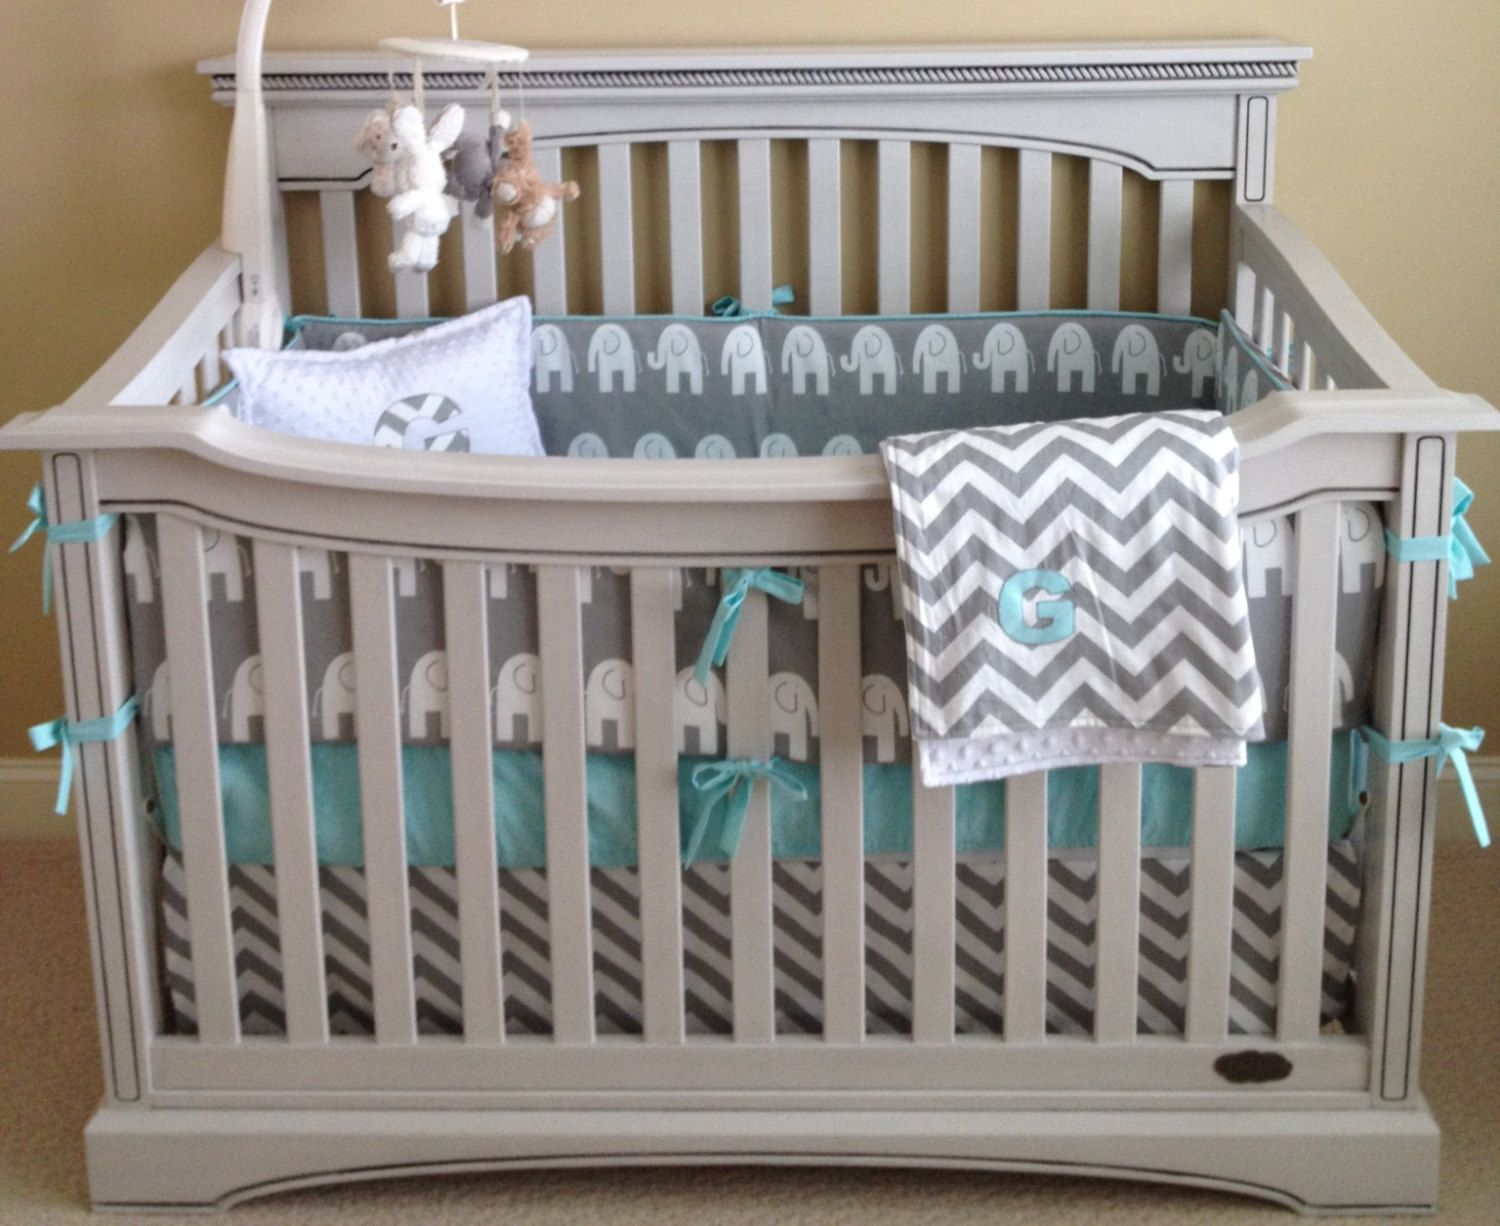 2 piece custom nursery crib bedding set premier prints you design grey and white elephant chevron crib skirt and bumper set 235 00 via etsy